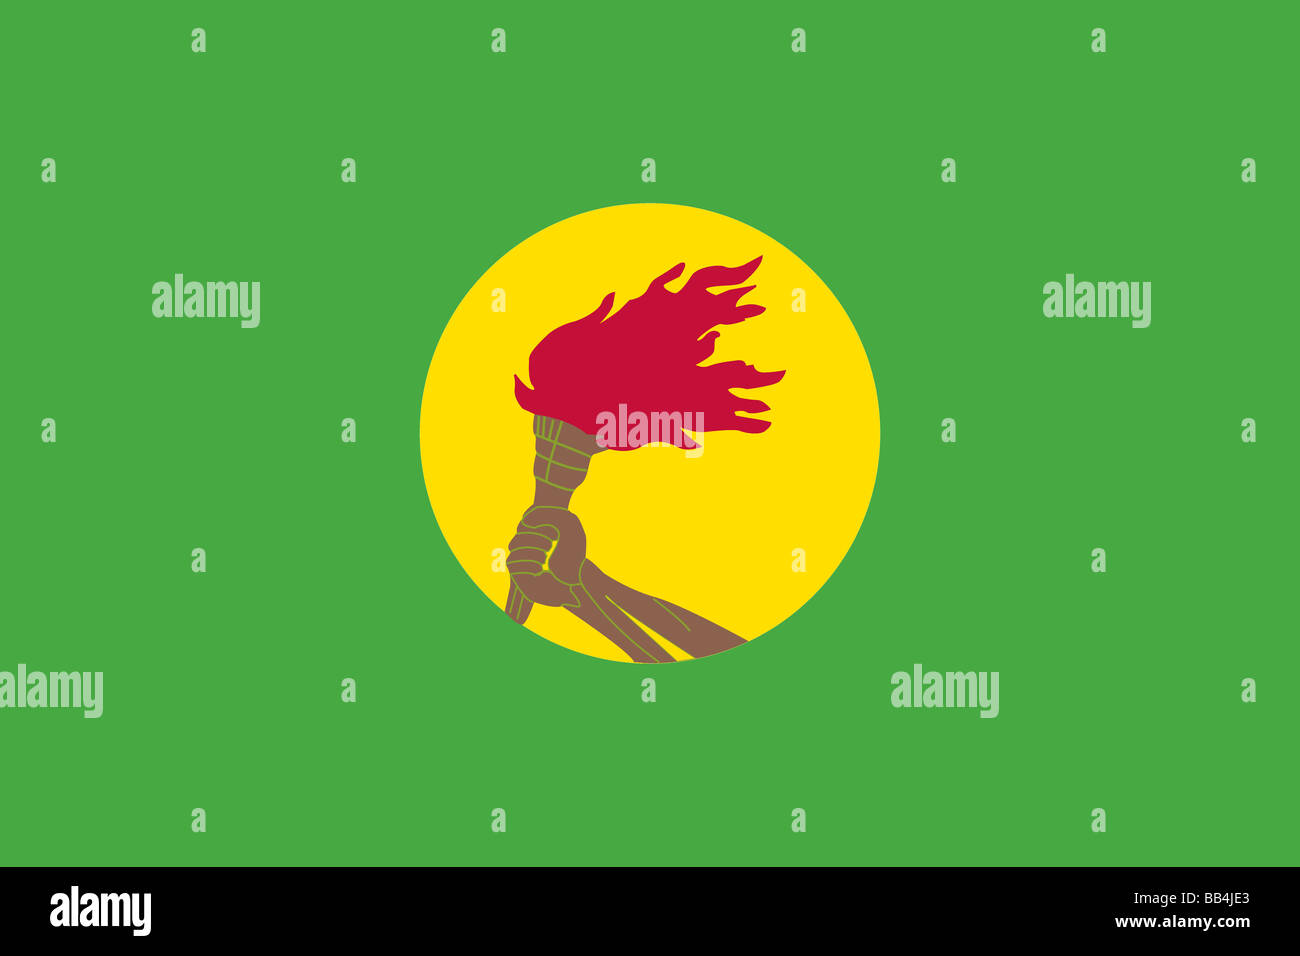 Historical flag of Zaire (the former Democratic Republic of the Congo), 1971 to 1997. - Stock Image